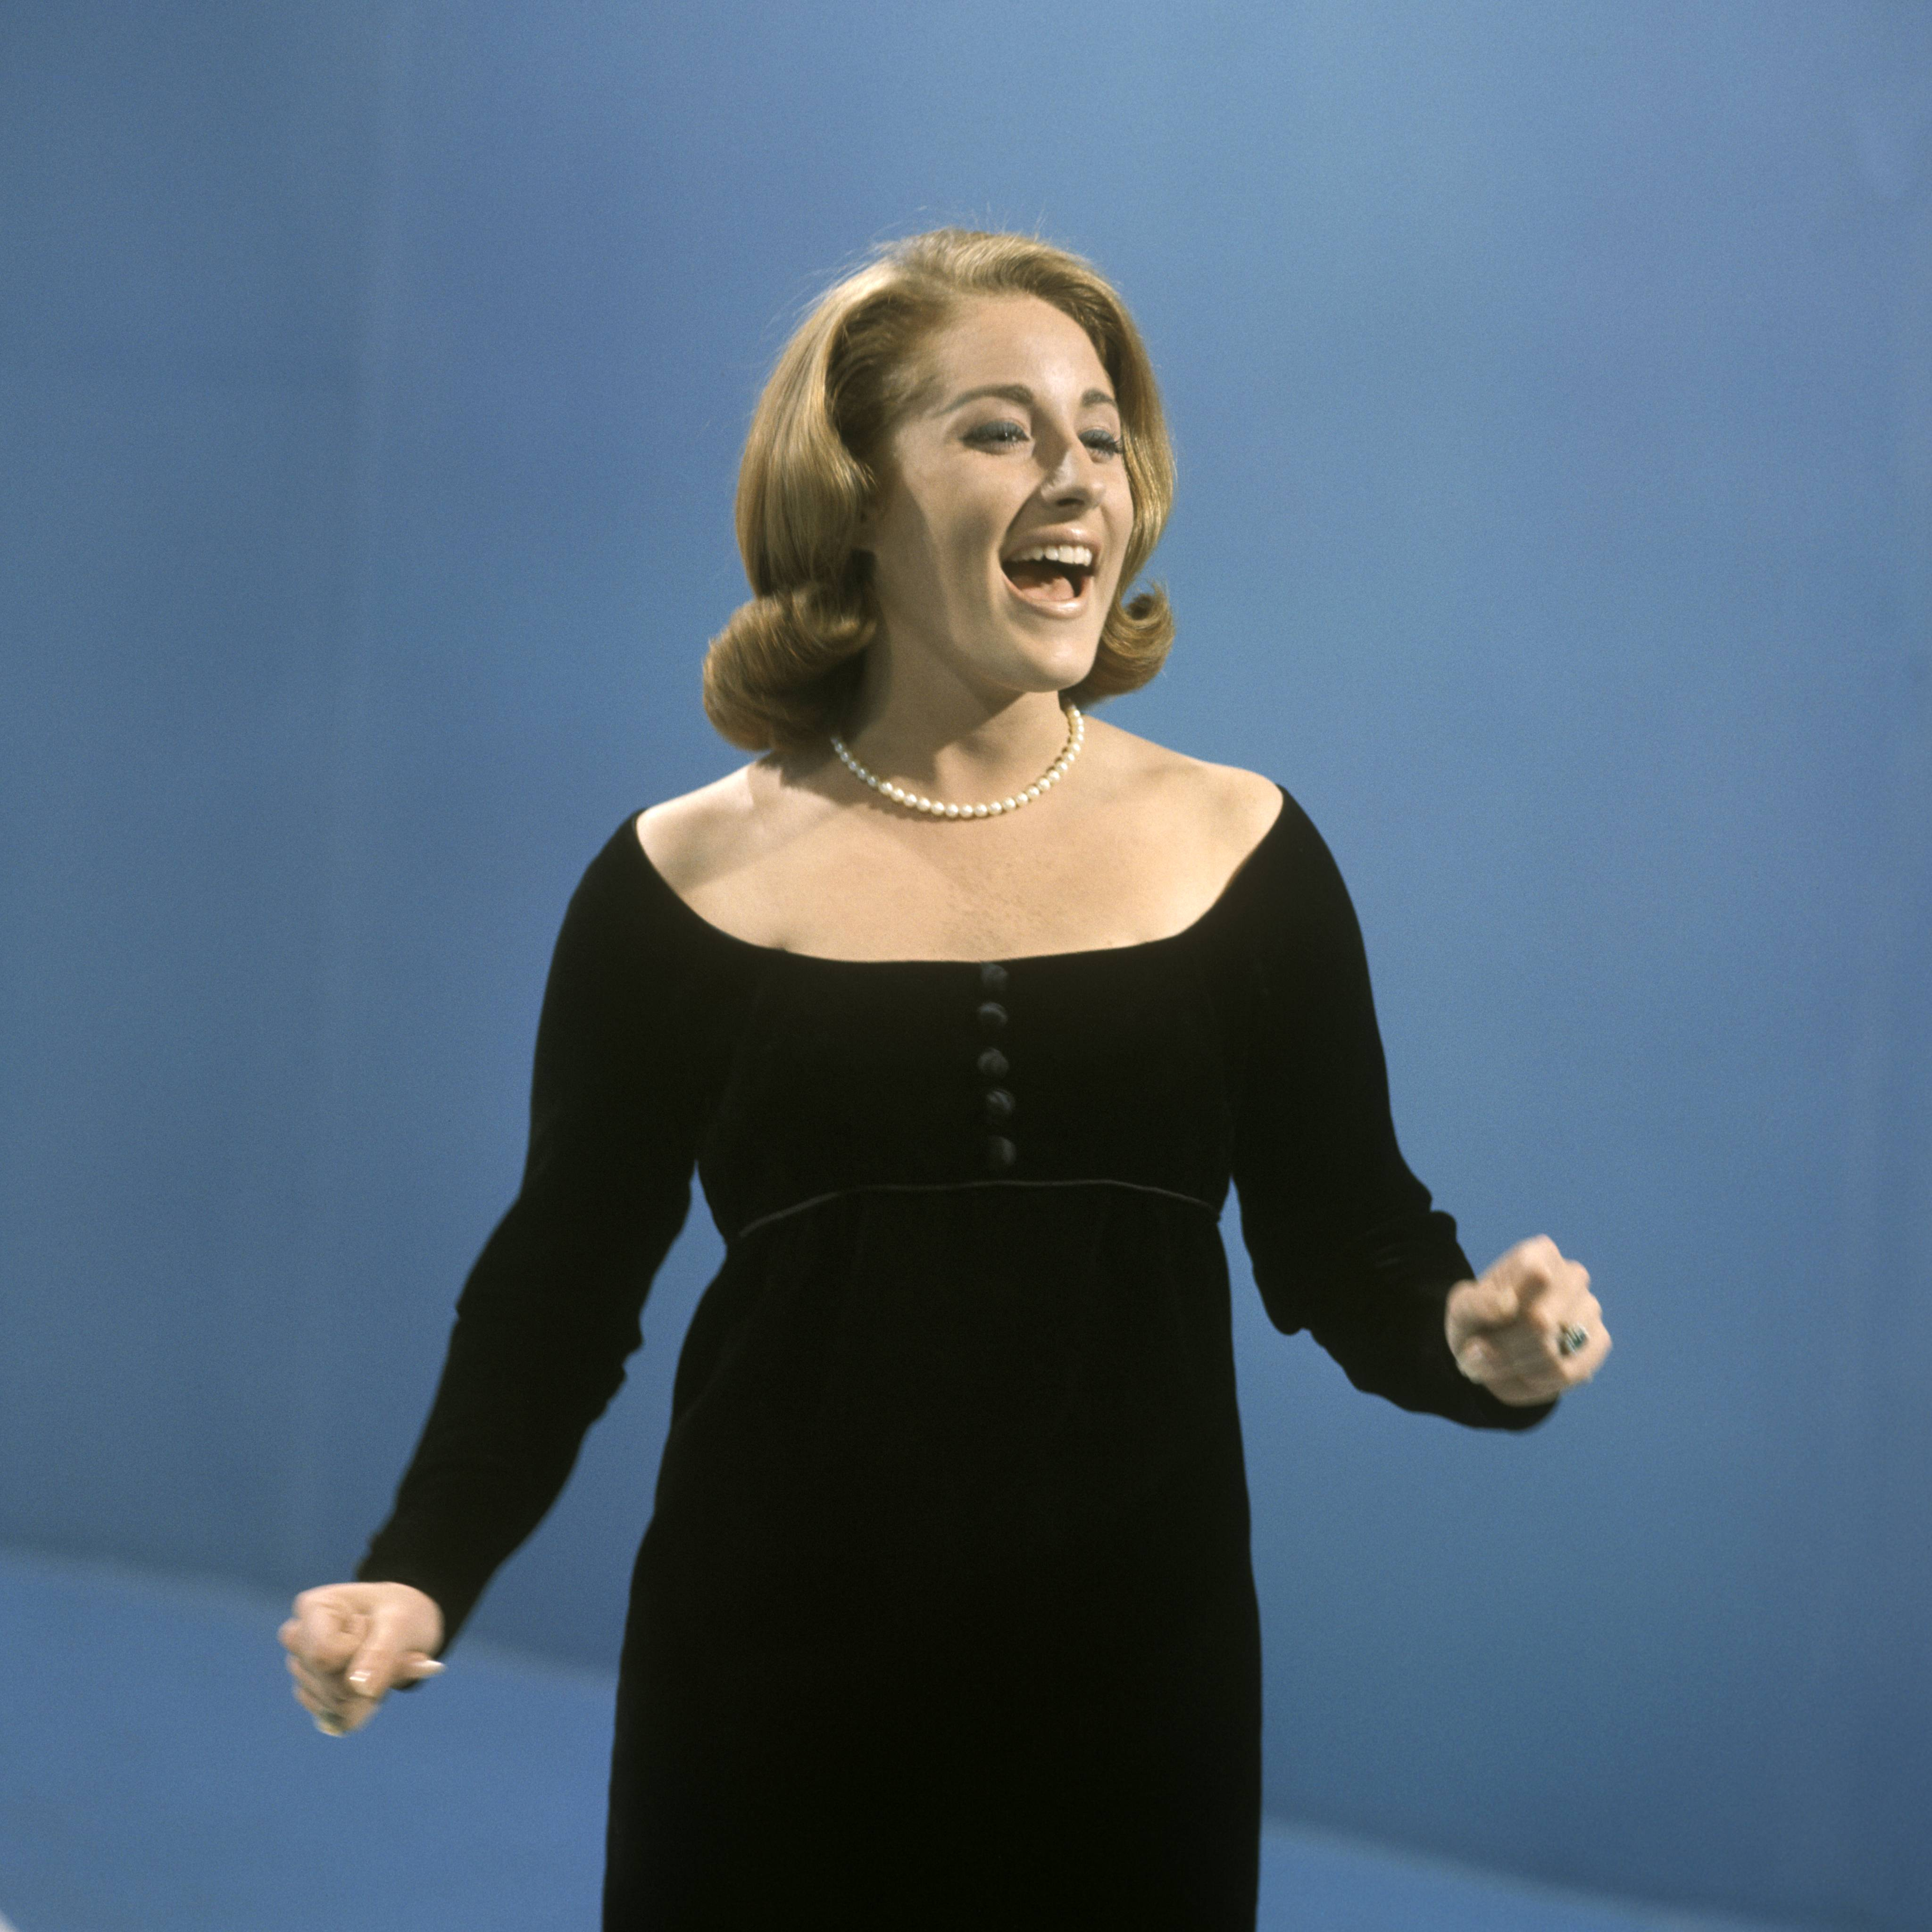 Lesley Gore, 'It's My Party' Singer, Dead at 68